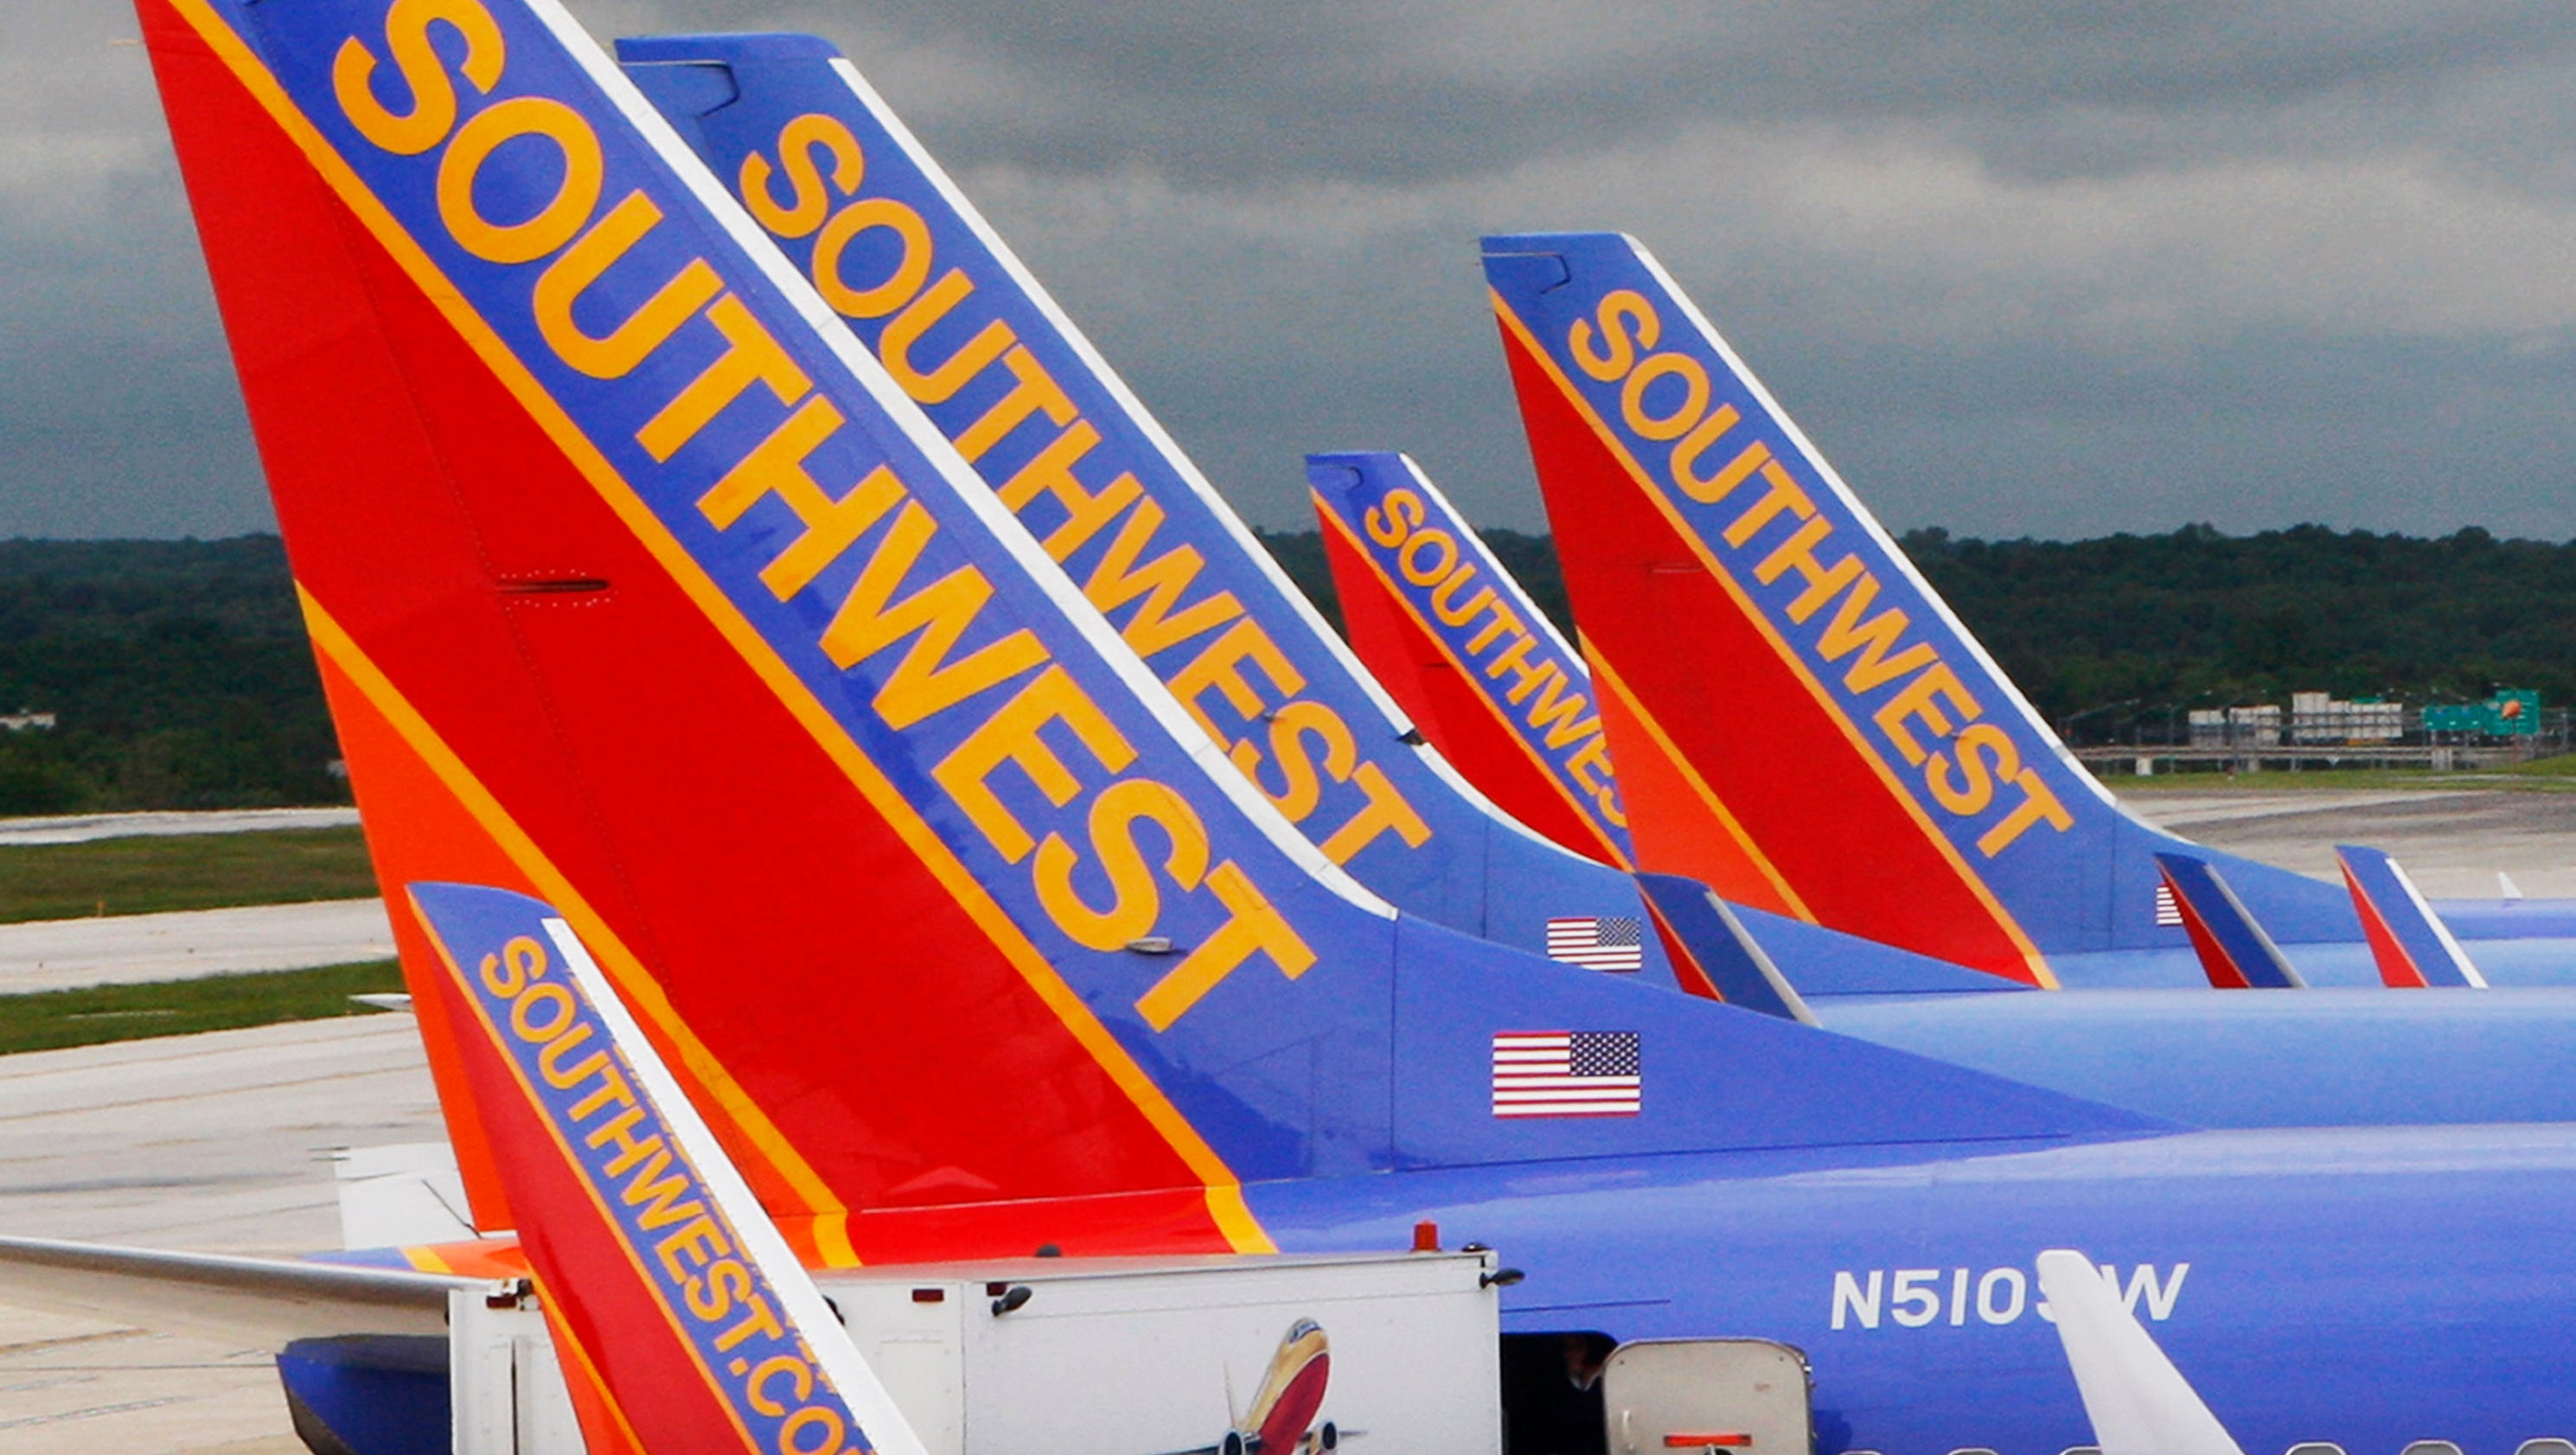 Oct 02, · Watch video· The carrier's four advertised sale-fare tiers for this sale – $49, $79, $99 and $ each way – are similar to the fares Southwest offered on .